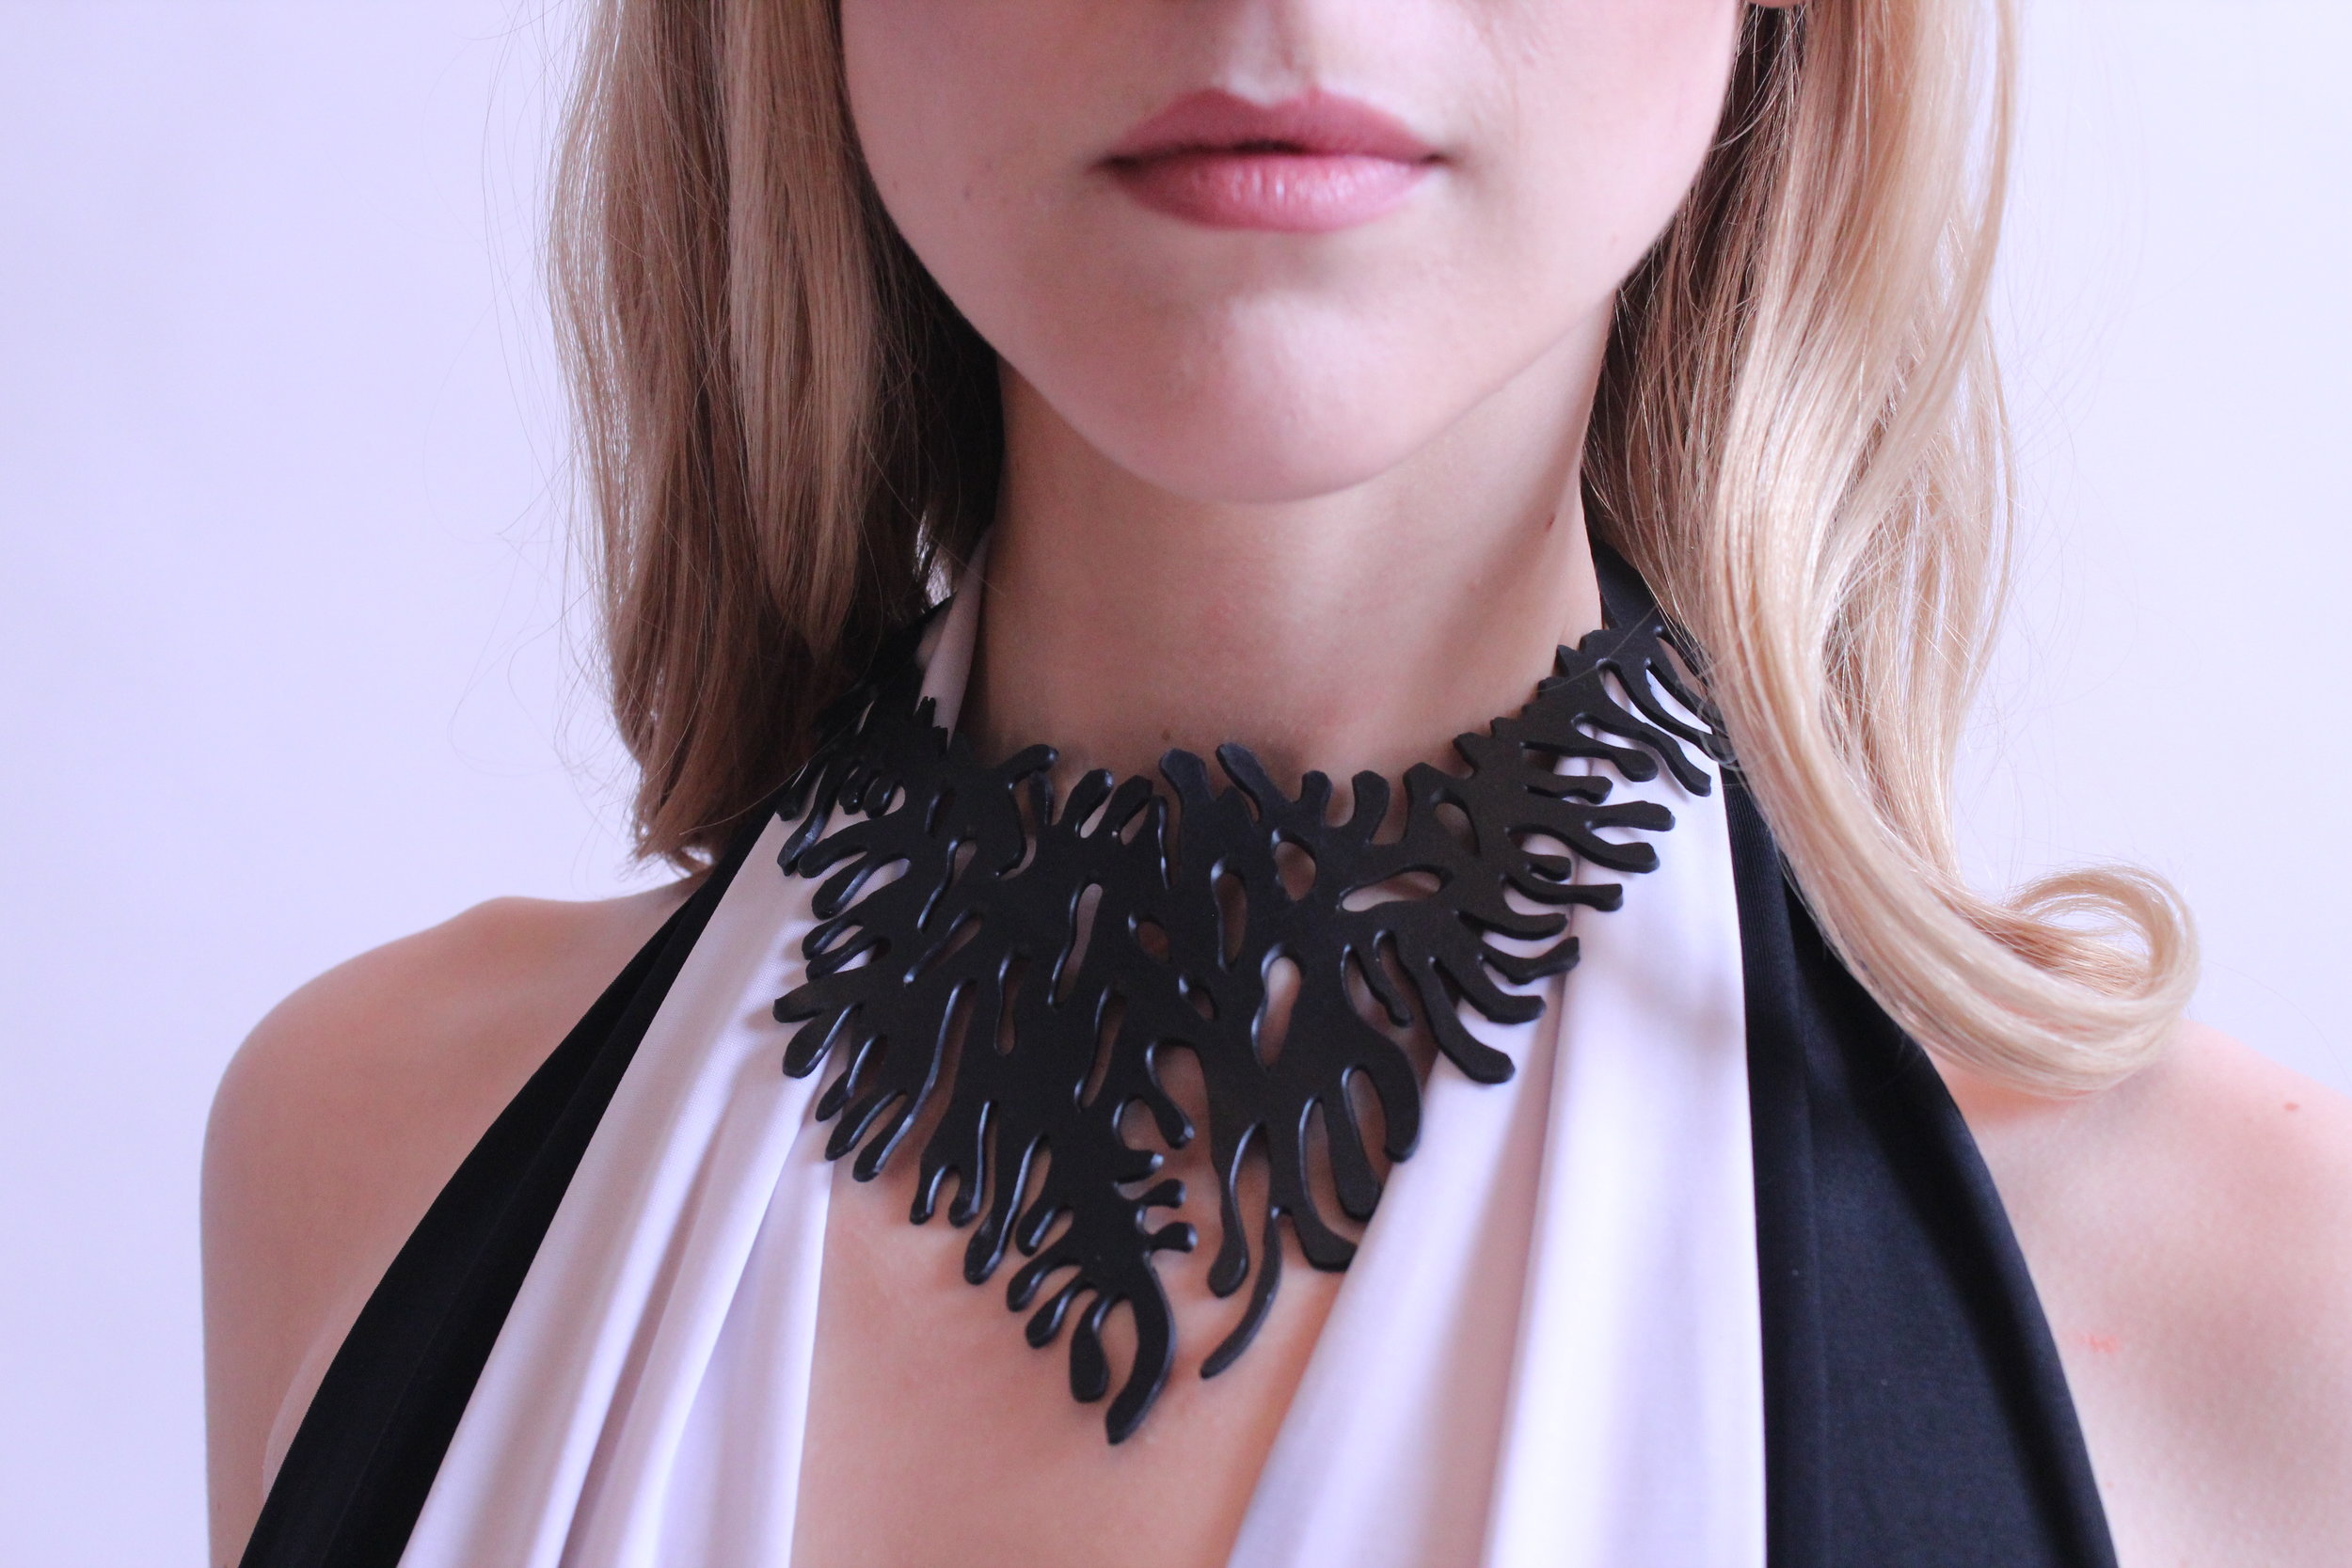 Coral Necklace by Cassandra Ciarallo, Chic Made Consciously 2016.